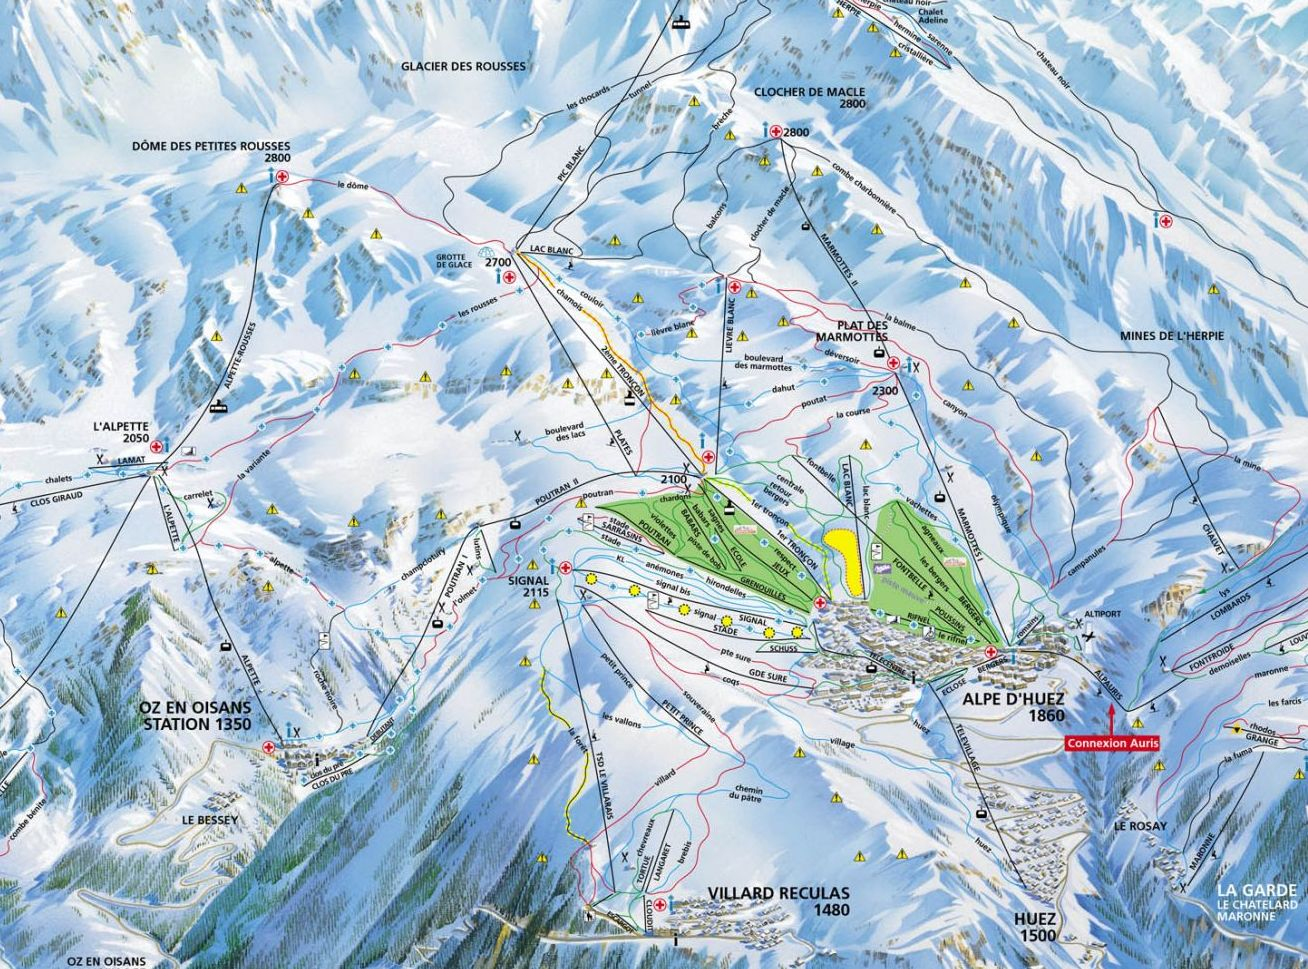 Oz en Oisans Piste / Trail Map